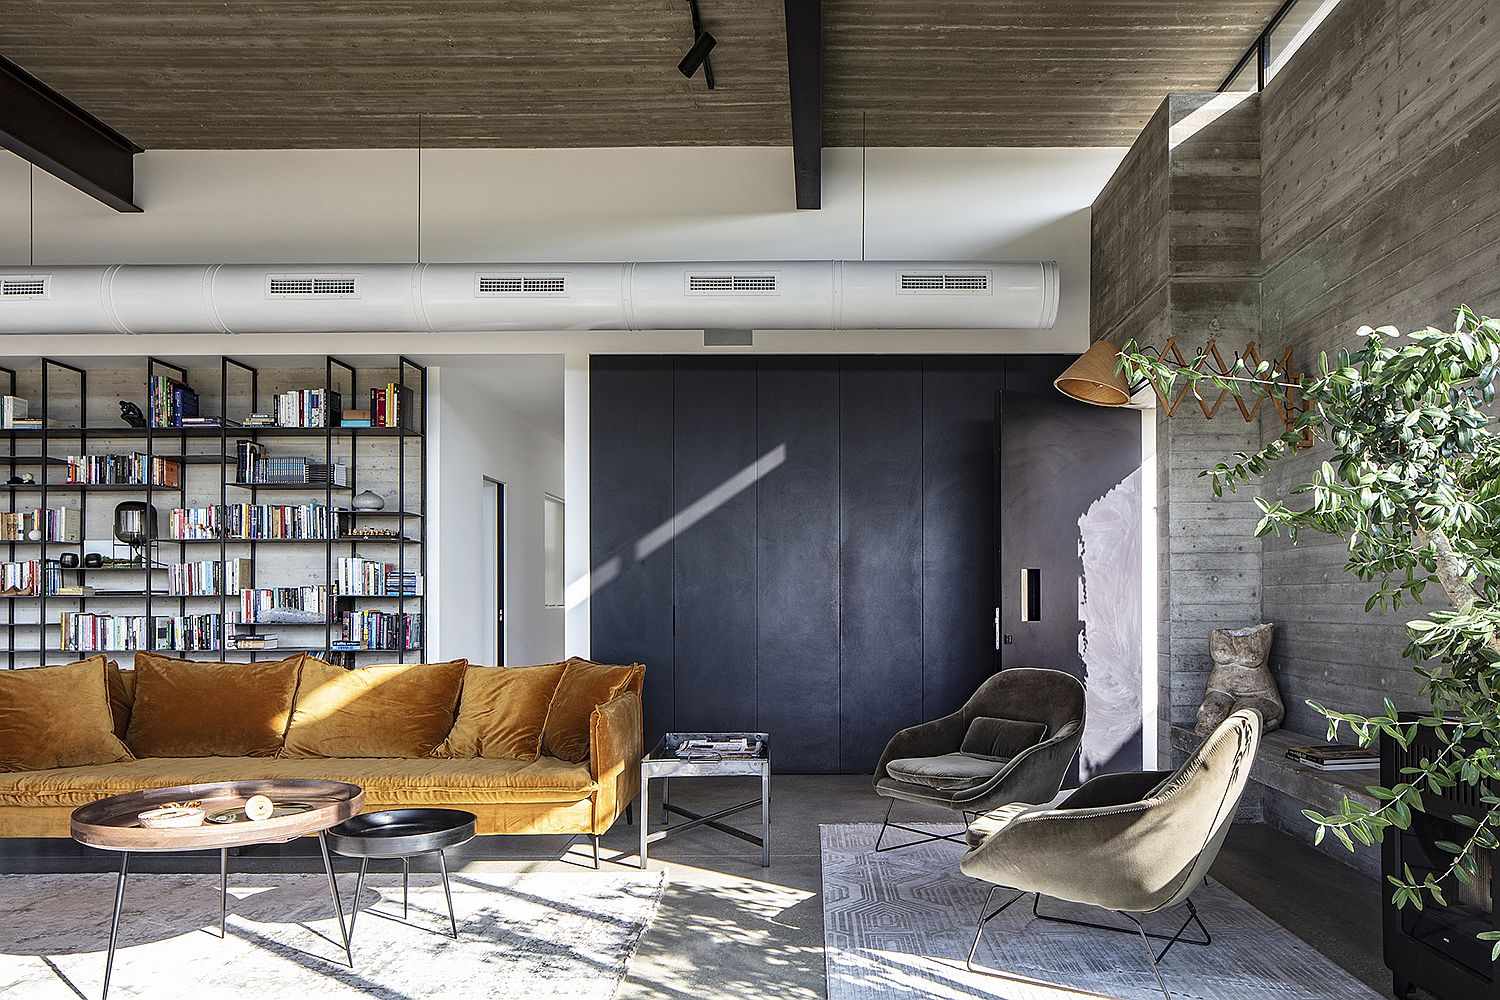 Wooden walls and metallic bookshelf inside the living room